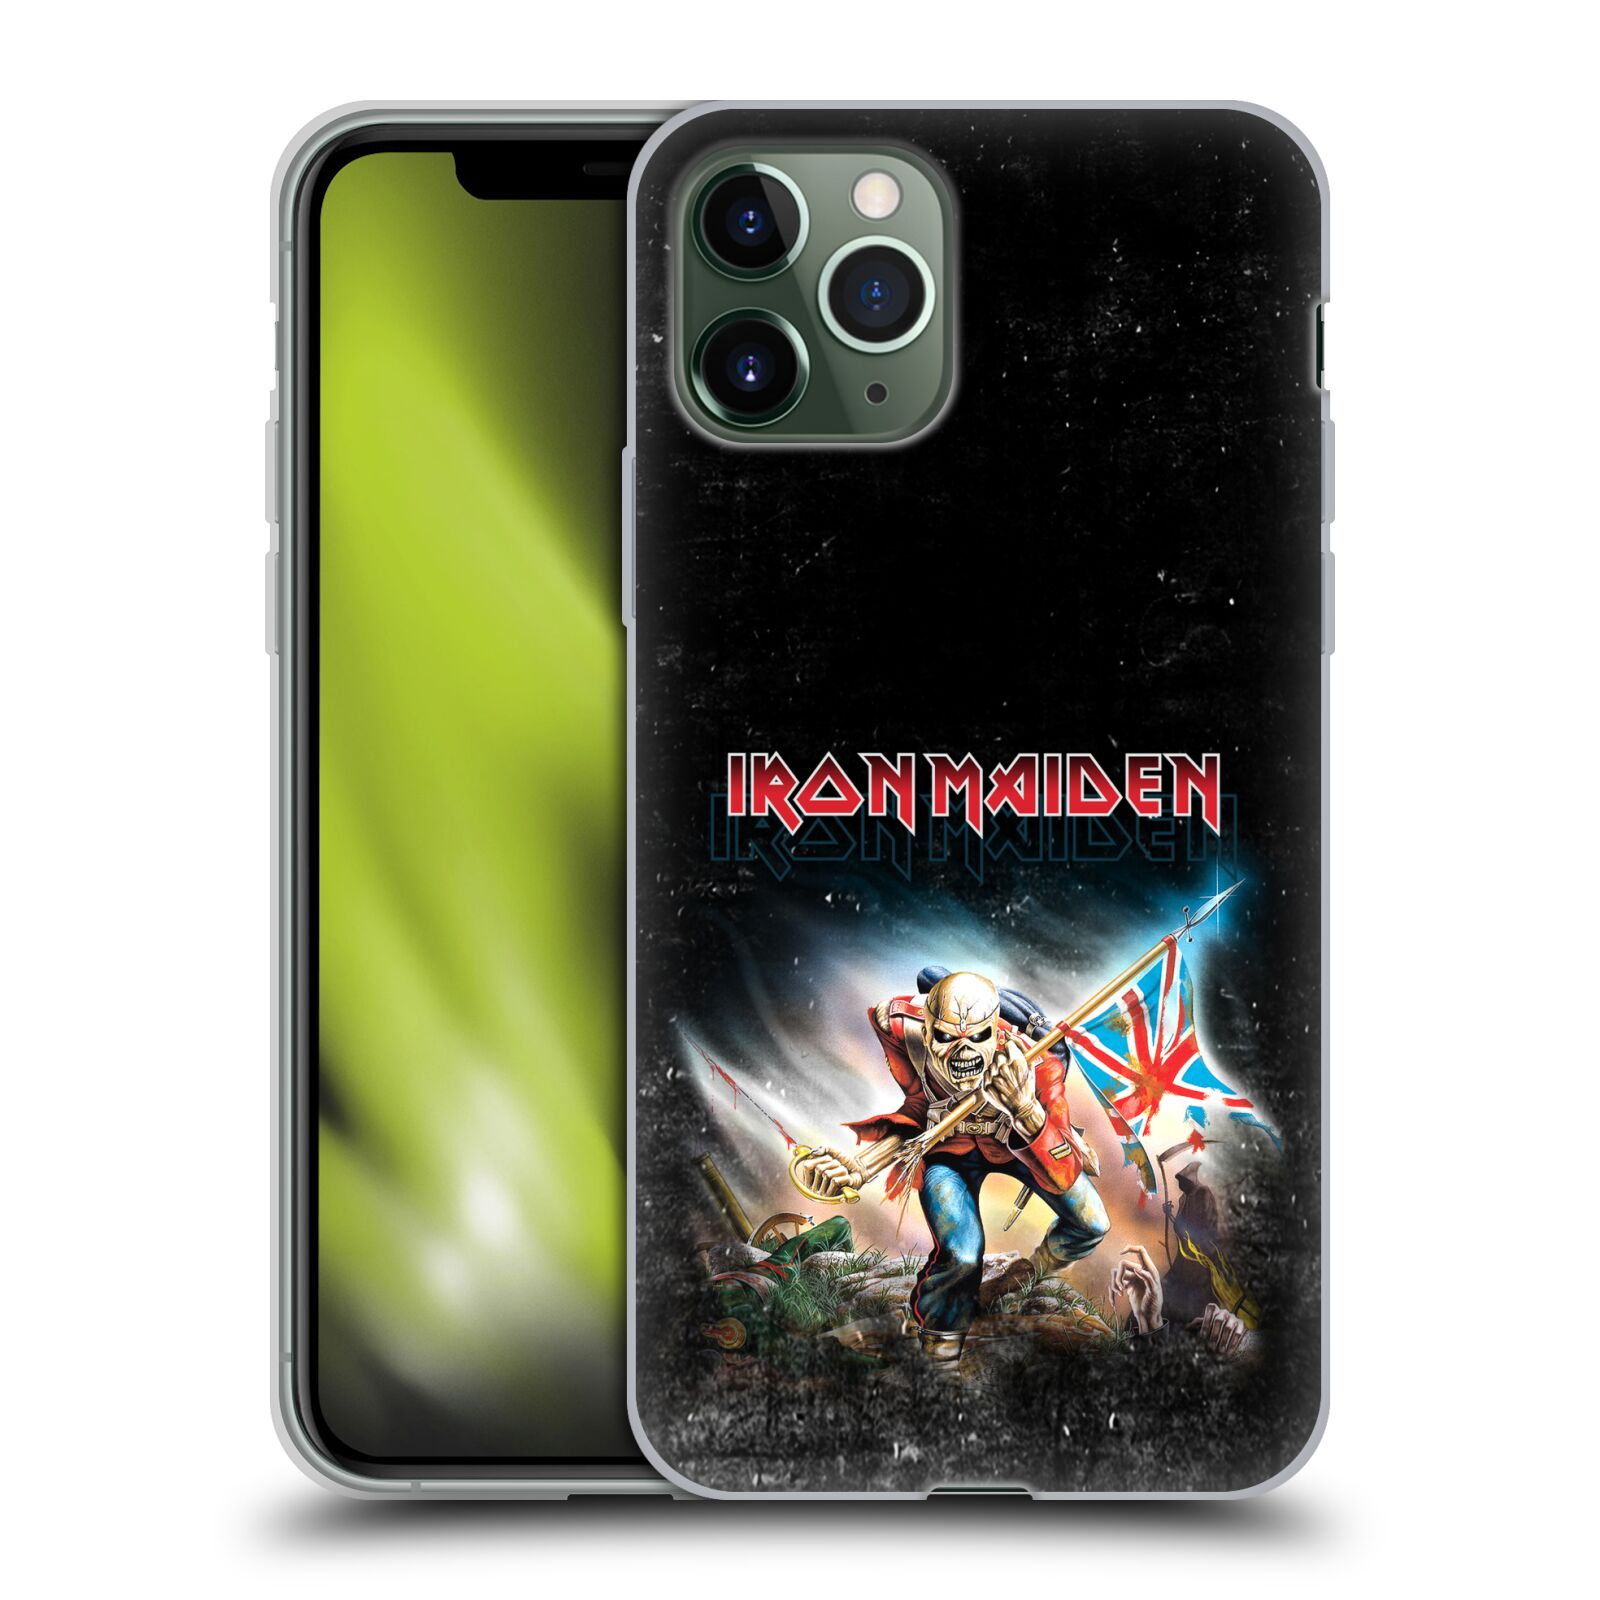 predam obal na iphone x | Silikonové pouzdro na mobil Apple iPhone 11 Pro - Head Case - Iron Maiden - Trooper 2016